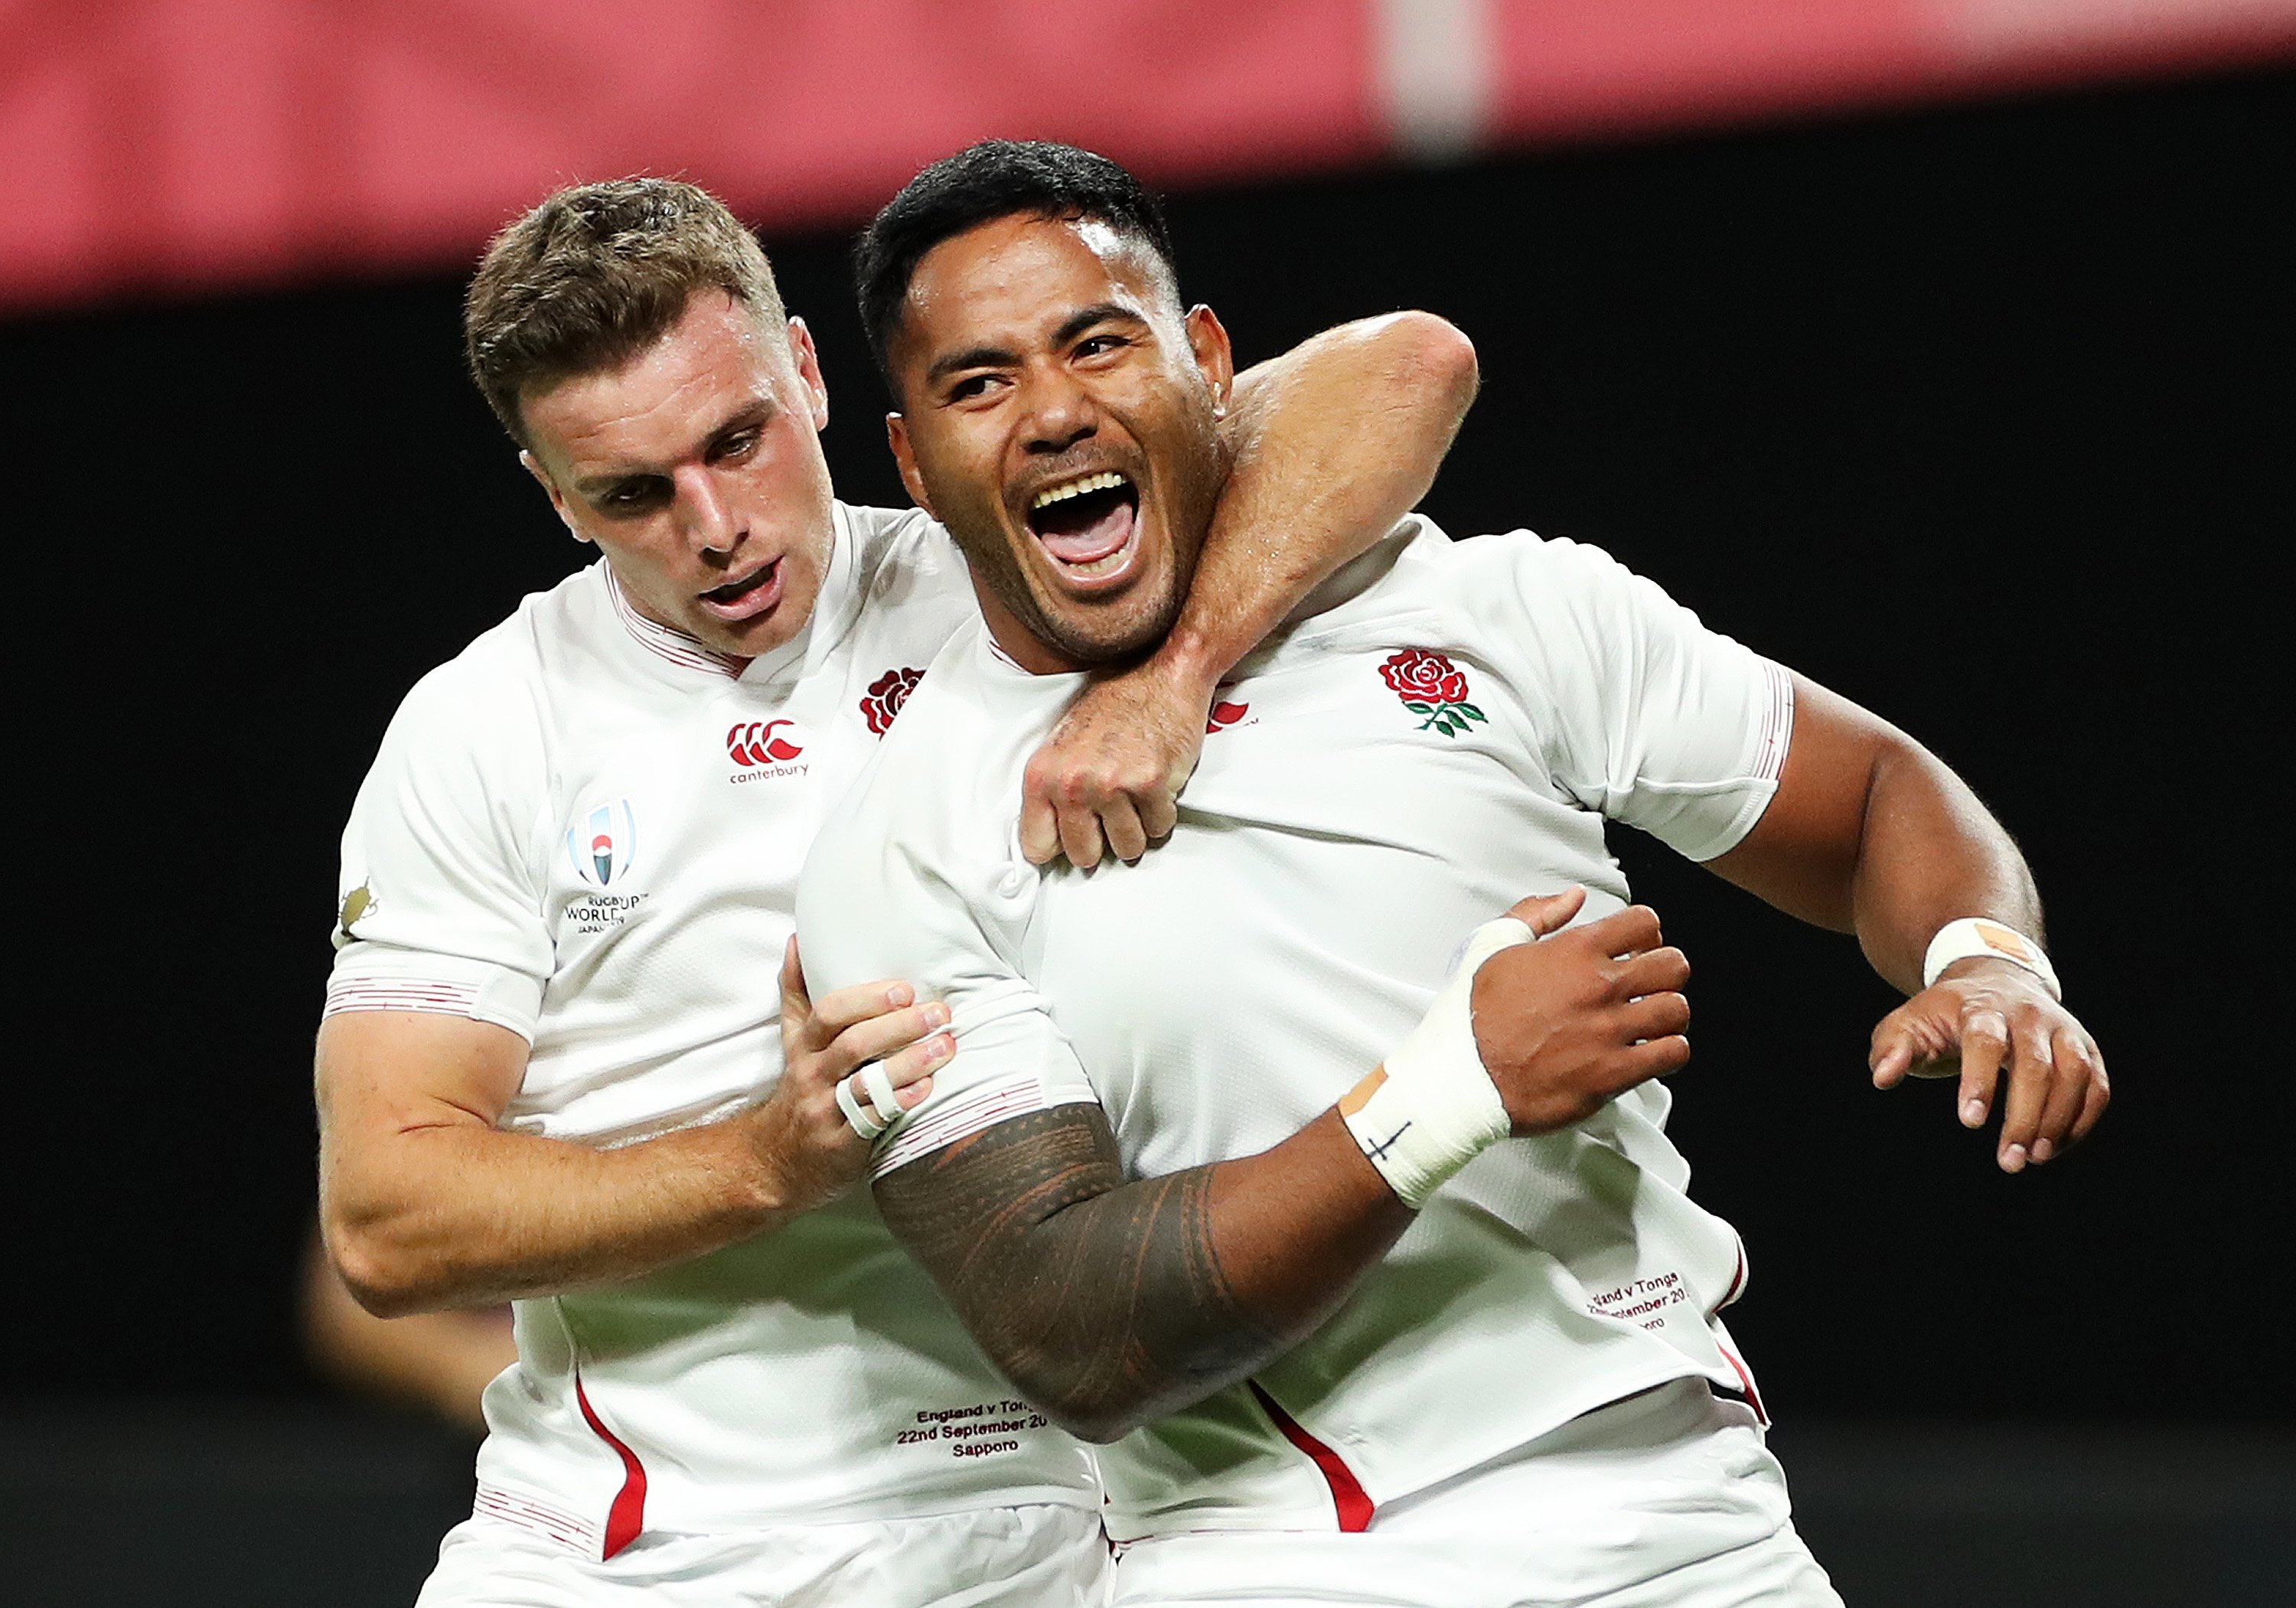 England begins World Cup campaign with battling victory against Tonga